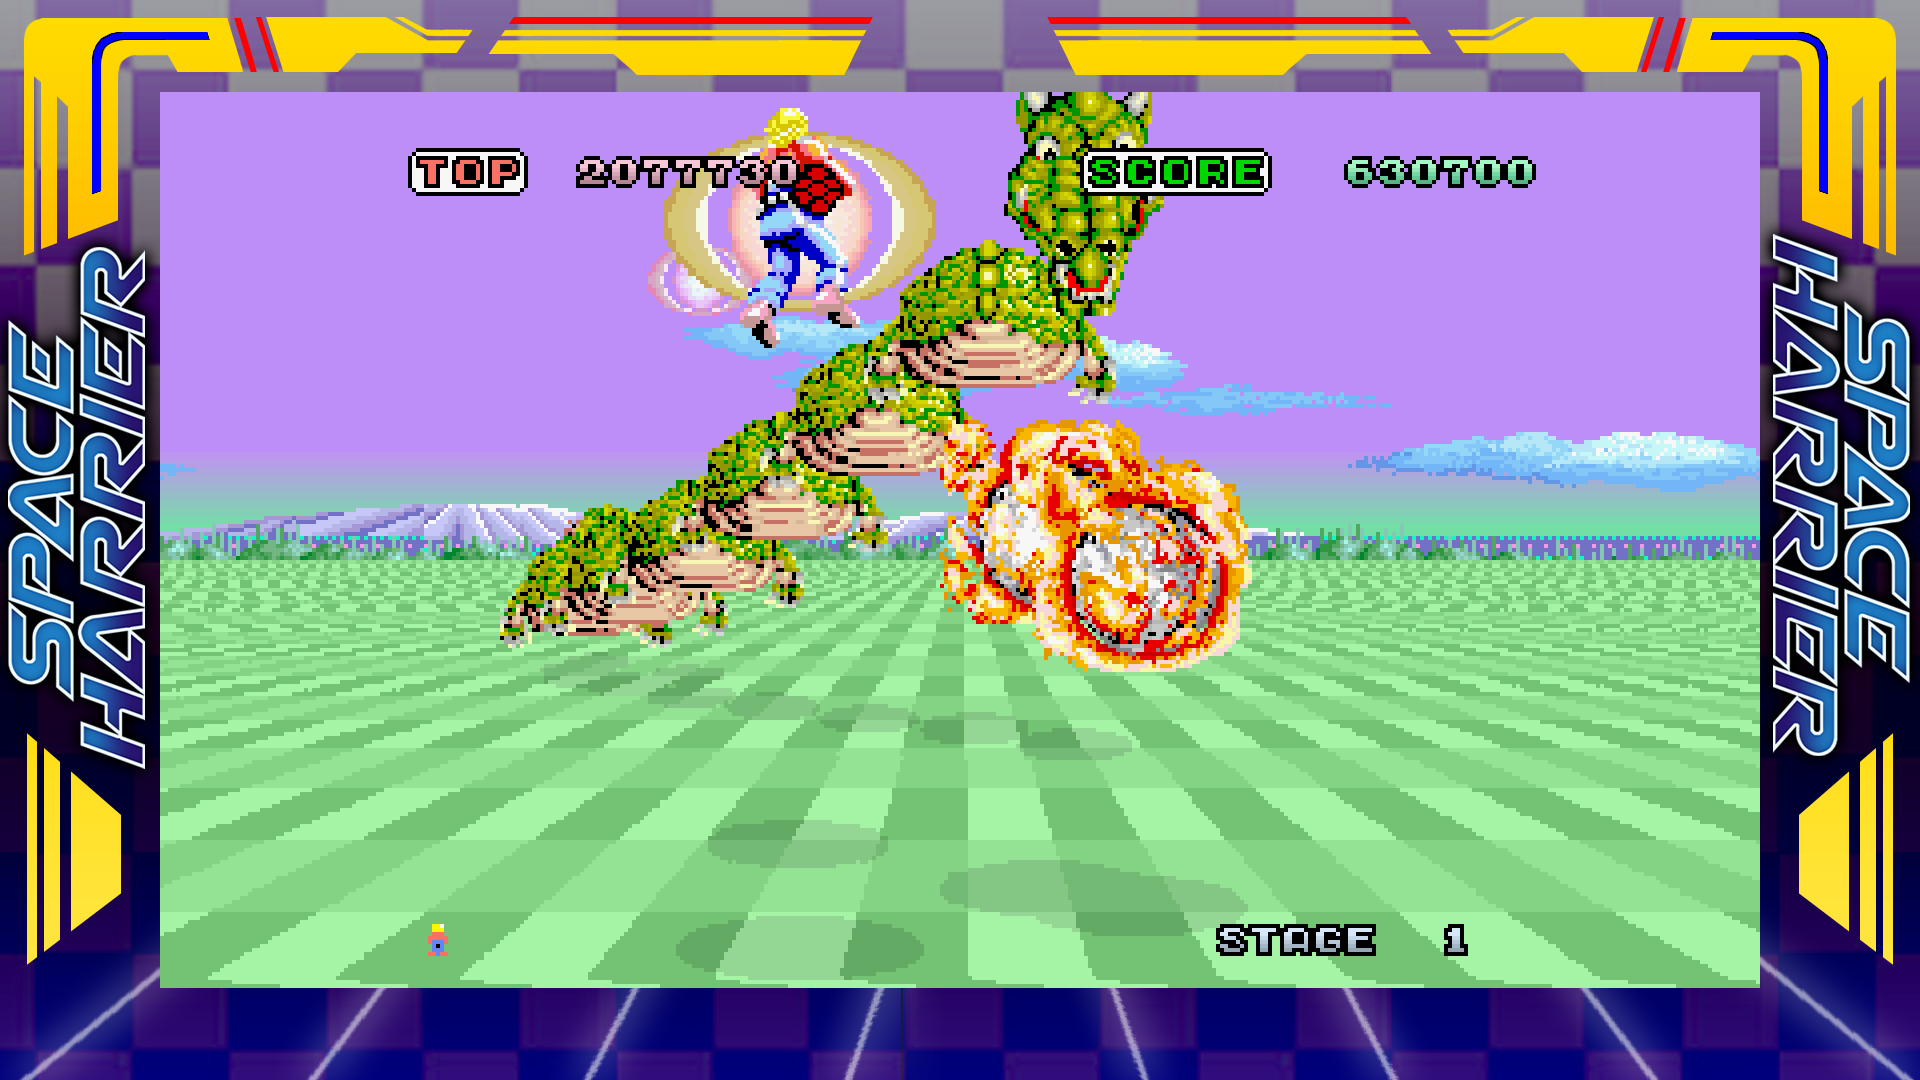 https://game.watch.impress.co.jp/img/gmw/docs/1142/219/spaceharrier02.jpg